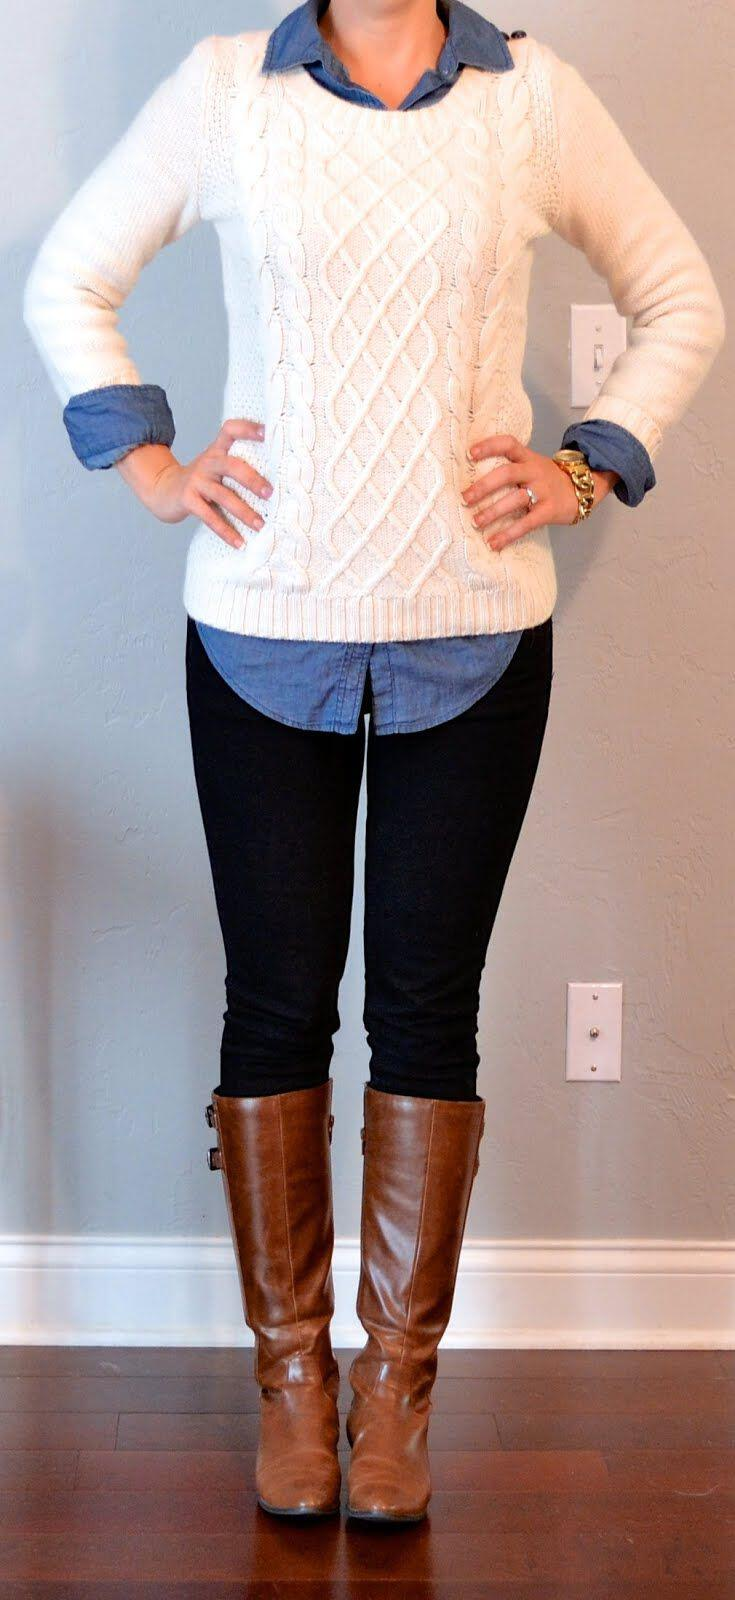 15 stylish fall outfits with cognac boots 10 - 15 stylish fall outfits with cognac boots